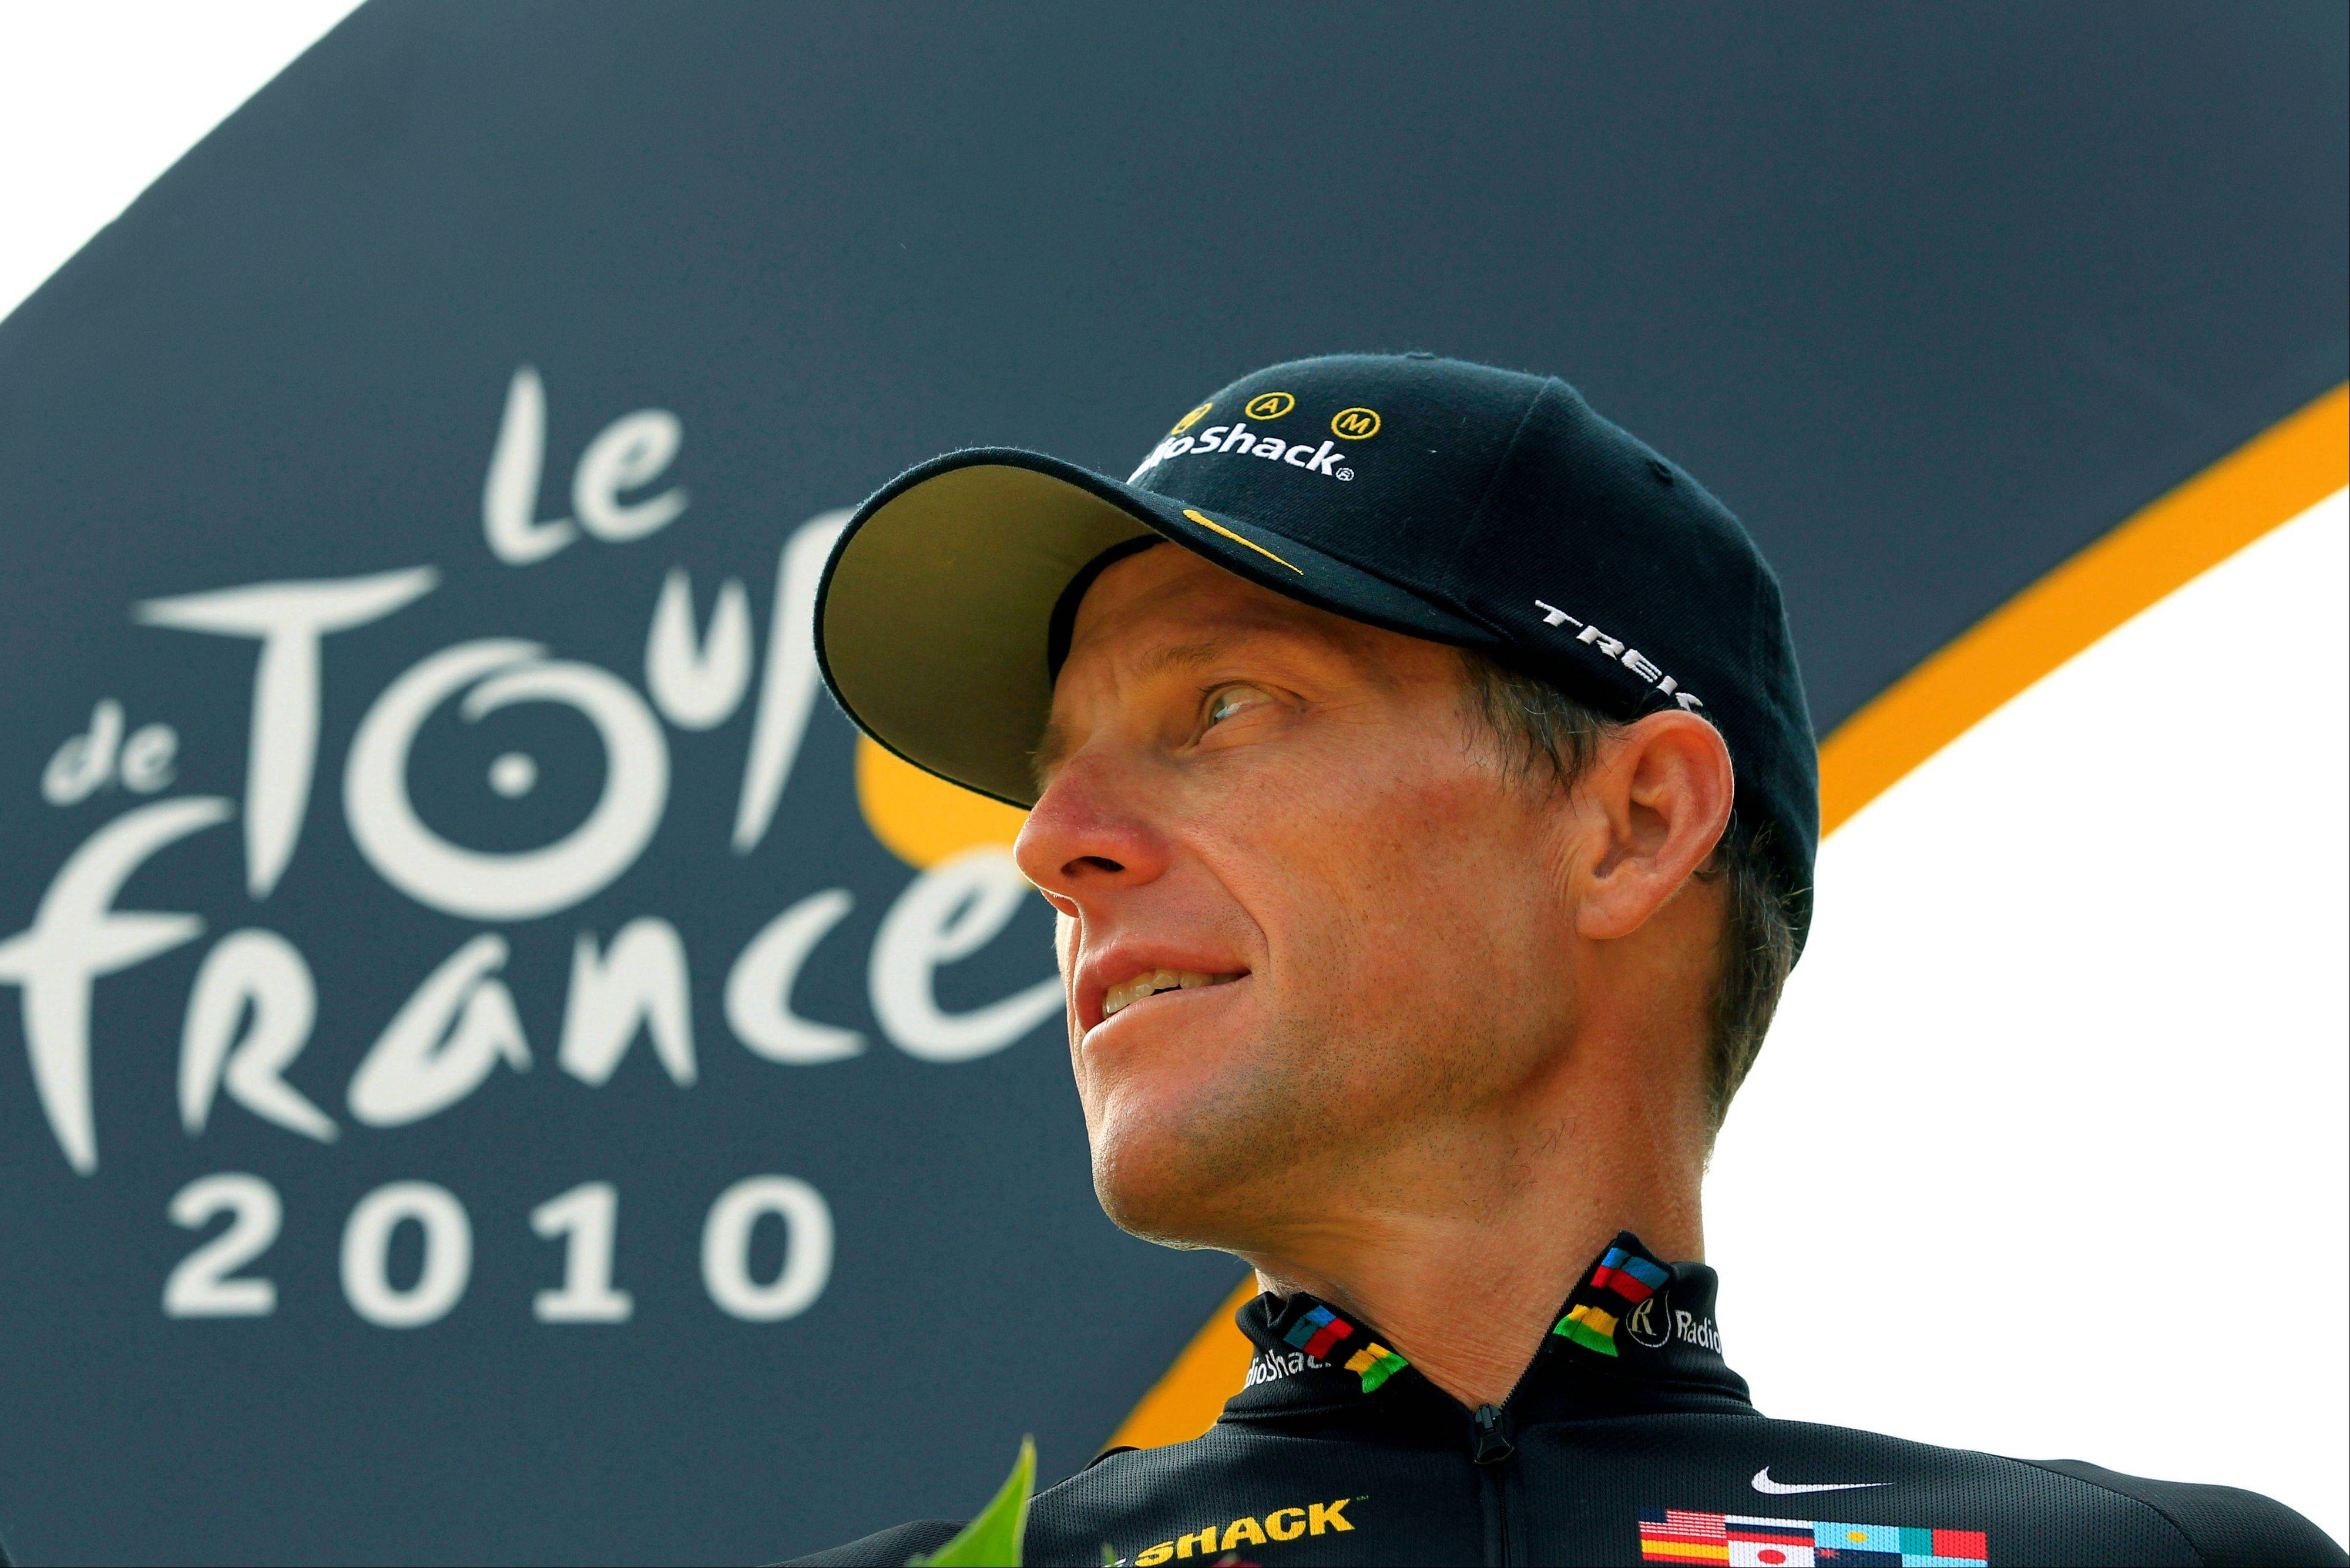 Lance Armstrong looks back on the podium after the 20th and last stage of the Tour de France cycling race in Paris.